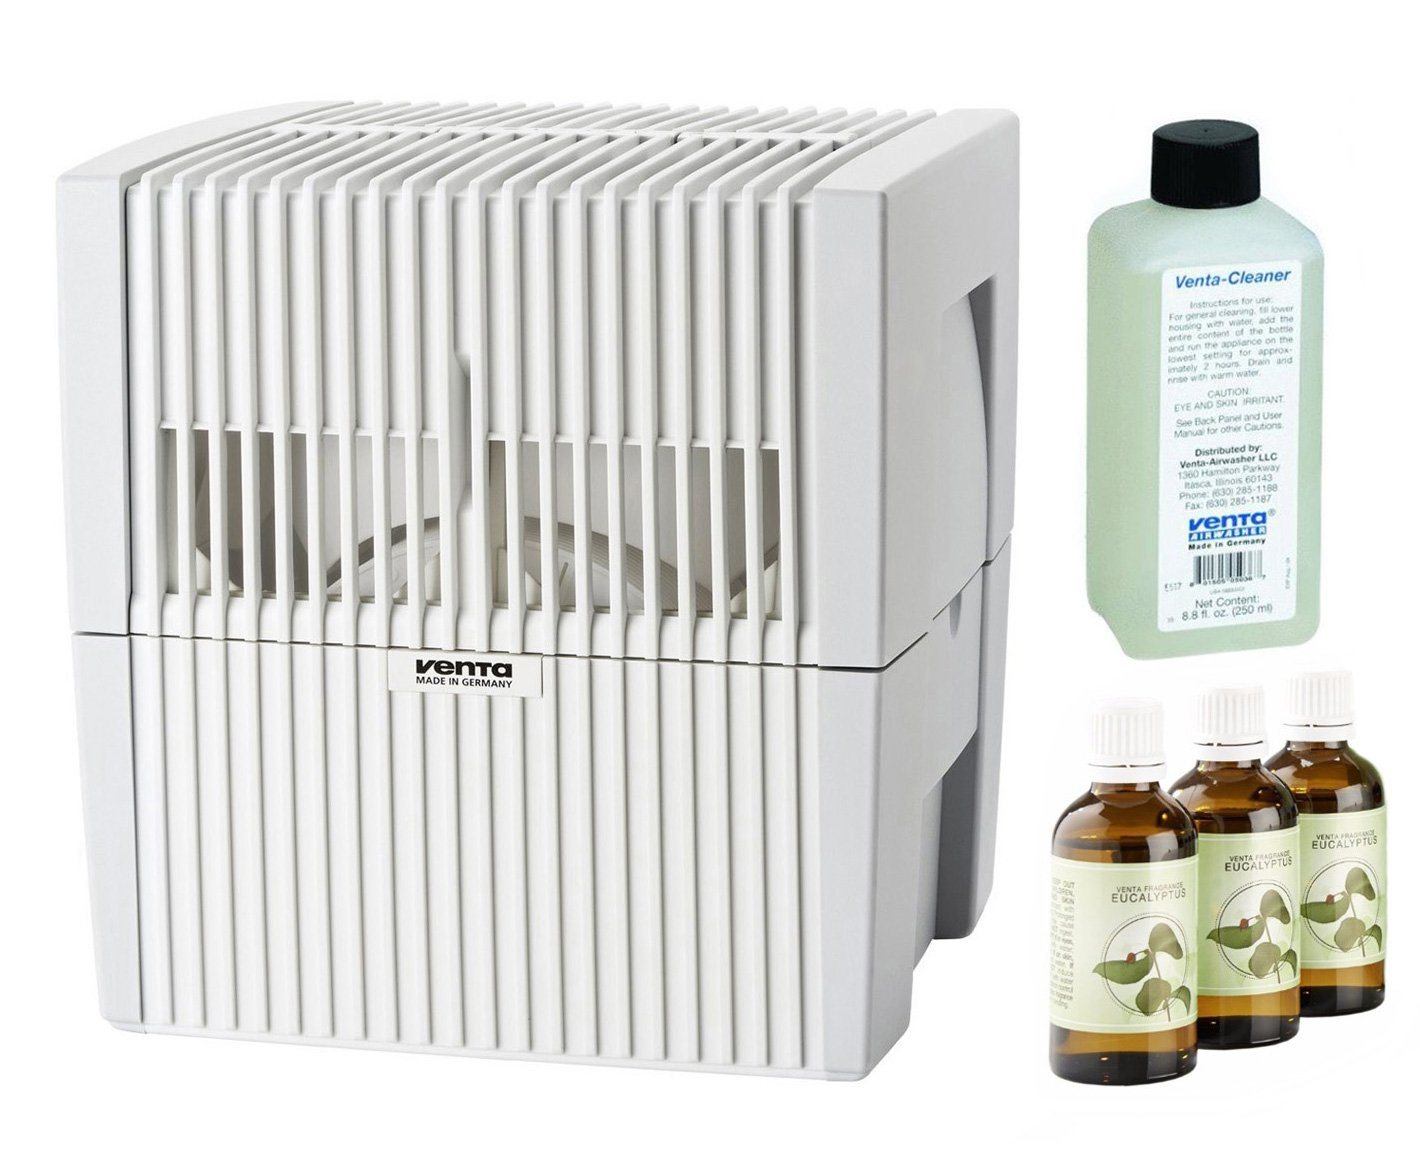 Venta LW25W Humidifier & Airwasher White w/ Fragrance & Cleaning Solution